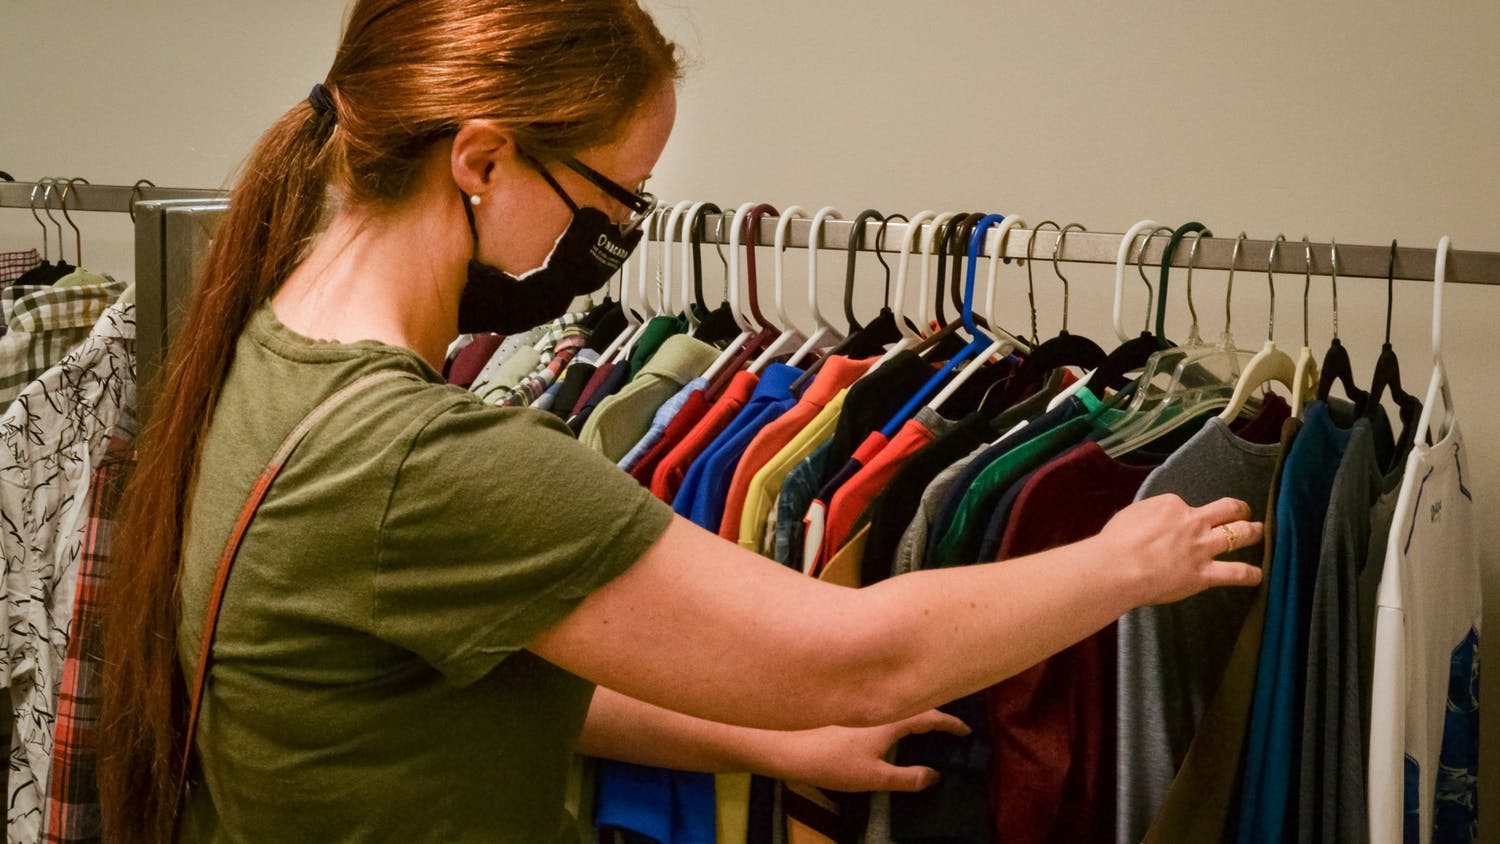 UF-lecturer Kelly Medley, 35, sifts through racks of used clothes at the Humane Society's new boutique thrift store, located at 5403 Southwest Archer Road on Sunday, June 6, 2021. The boutique store receives some of the local Humane Society's higher-end items, such as designer handbags and vintage musical instruments.